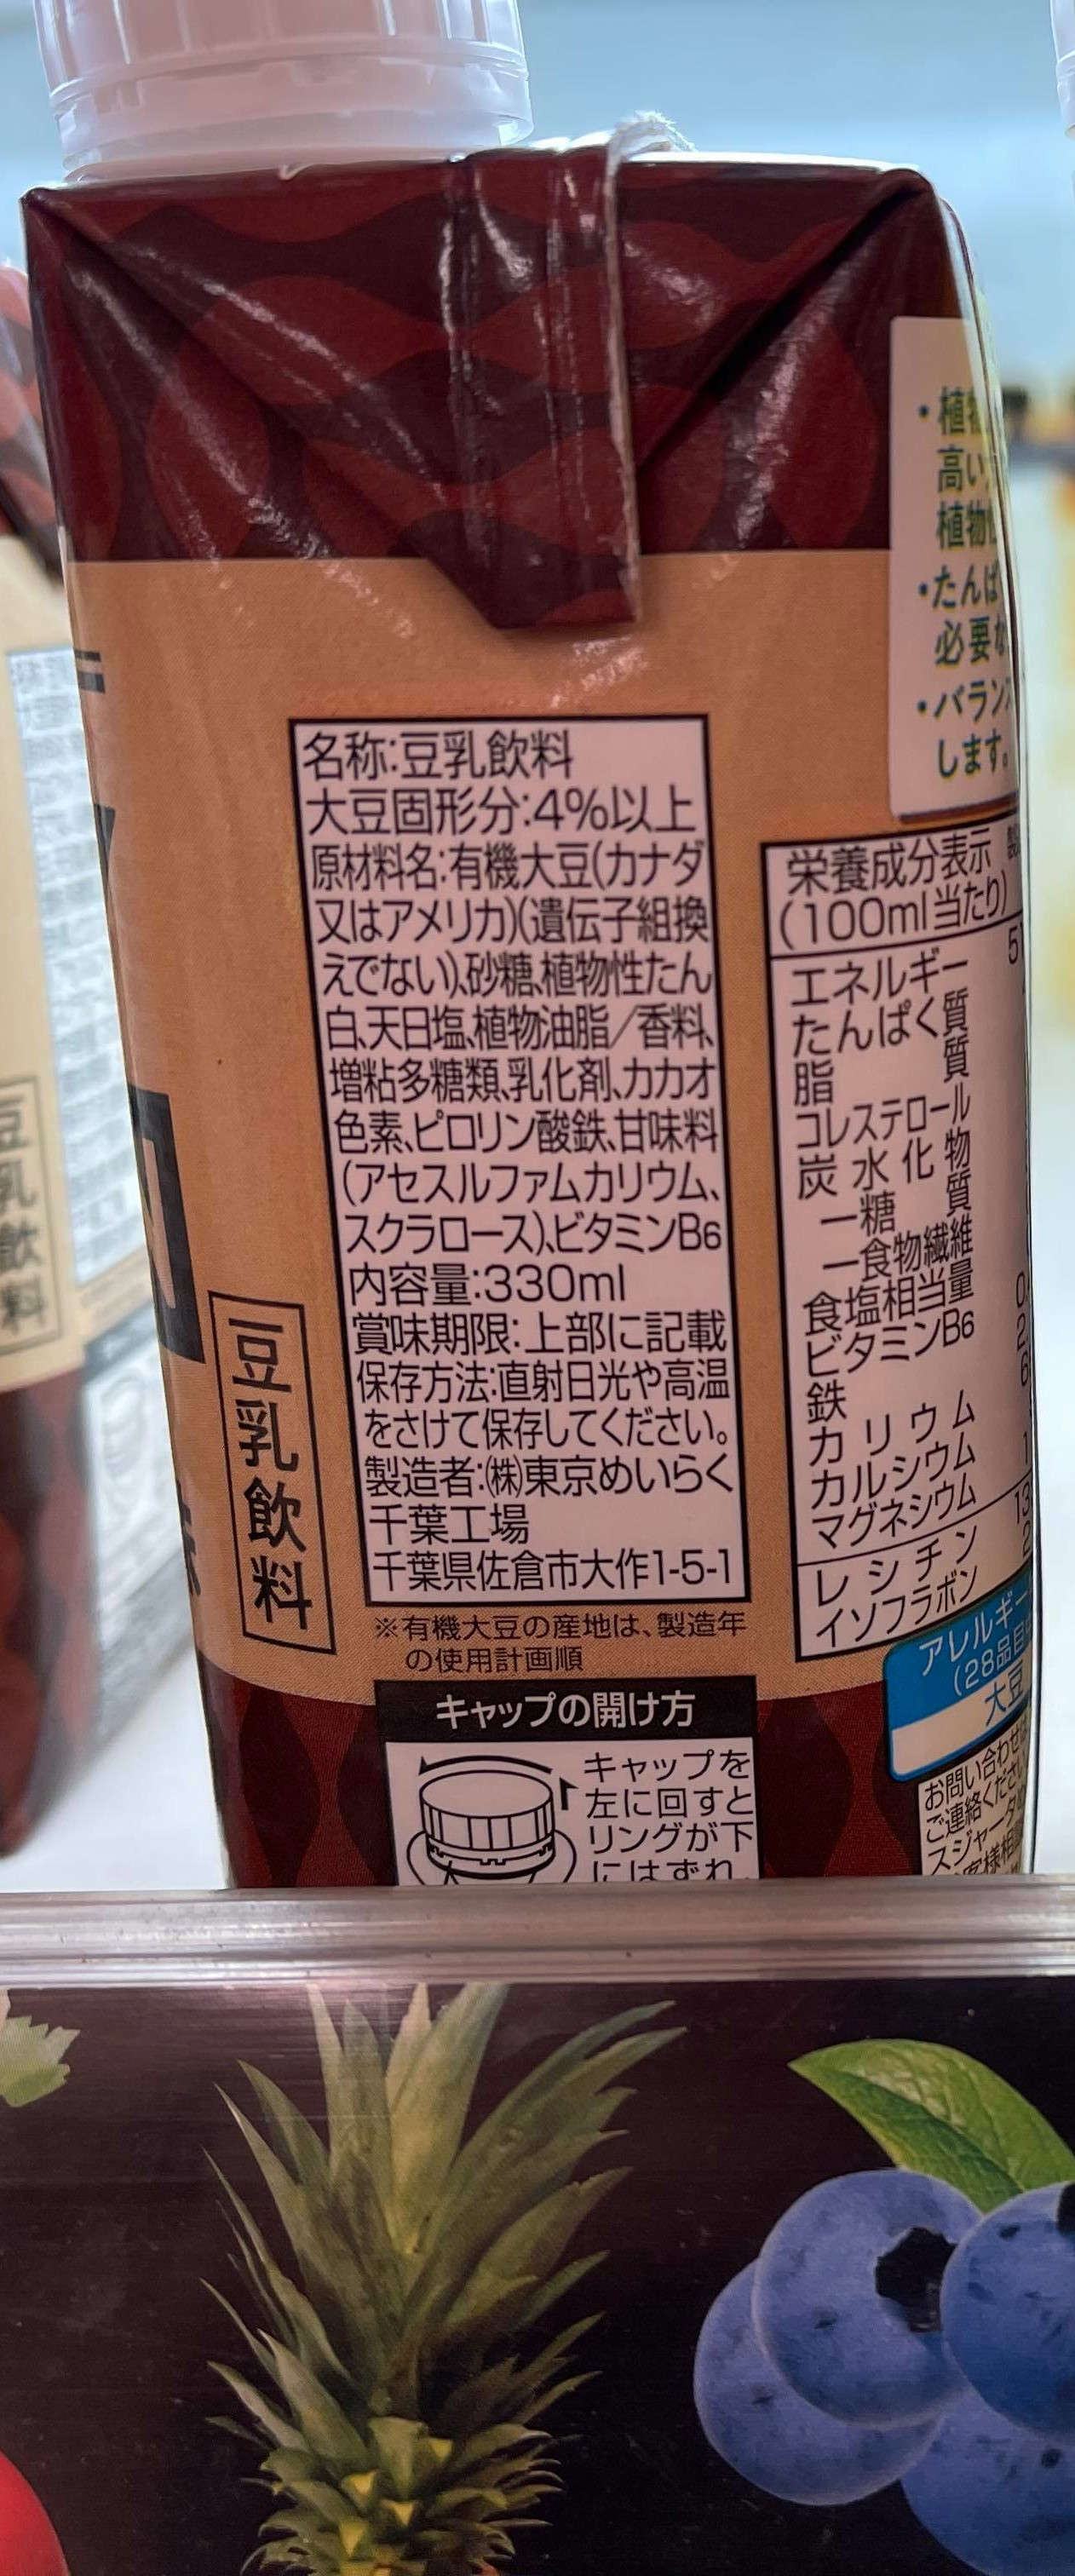 Sujahta Meiraku Soy Protein Cocoa Flavored Ingredient List